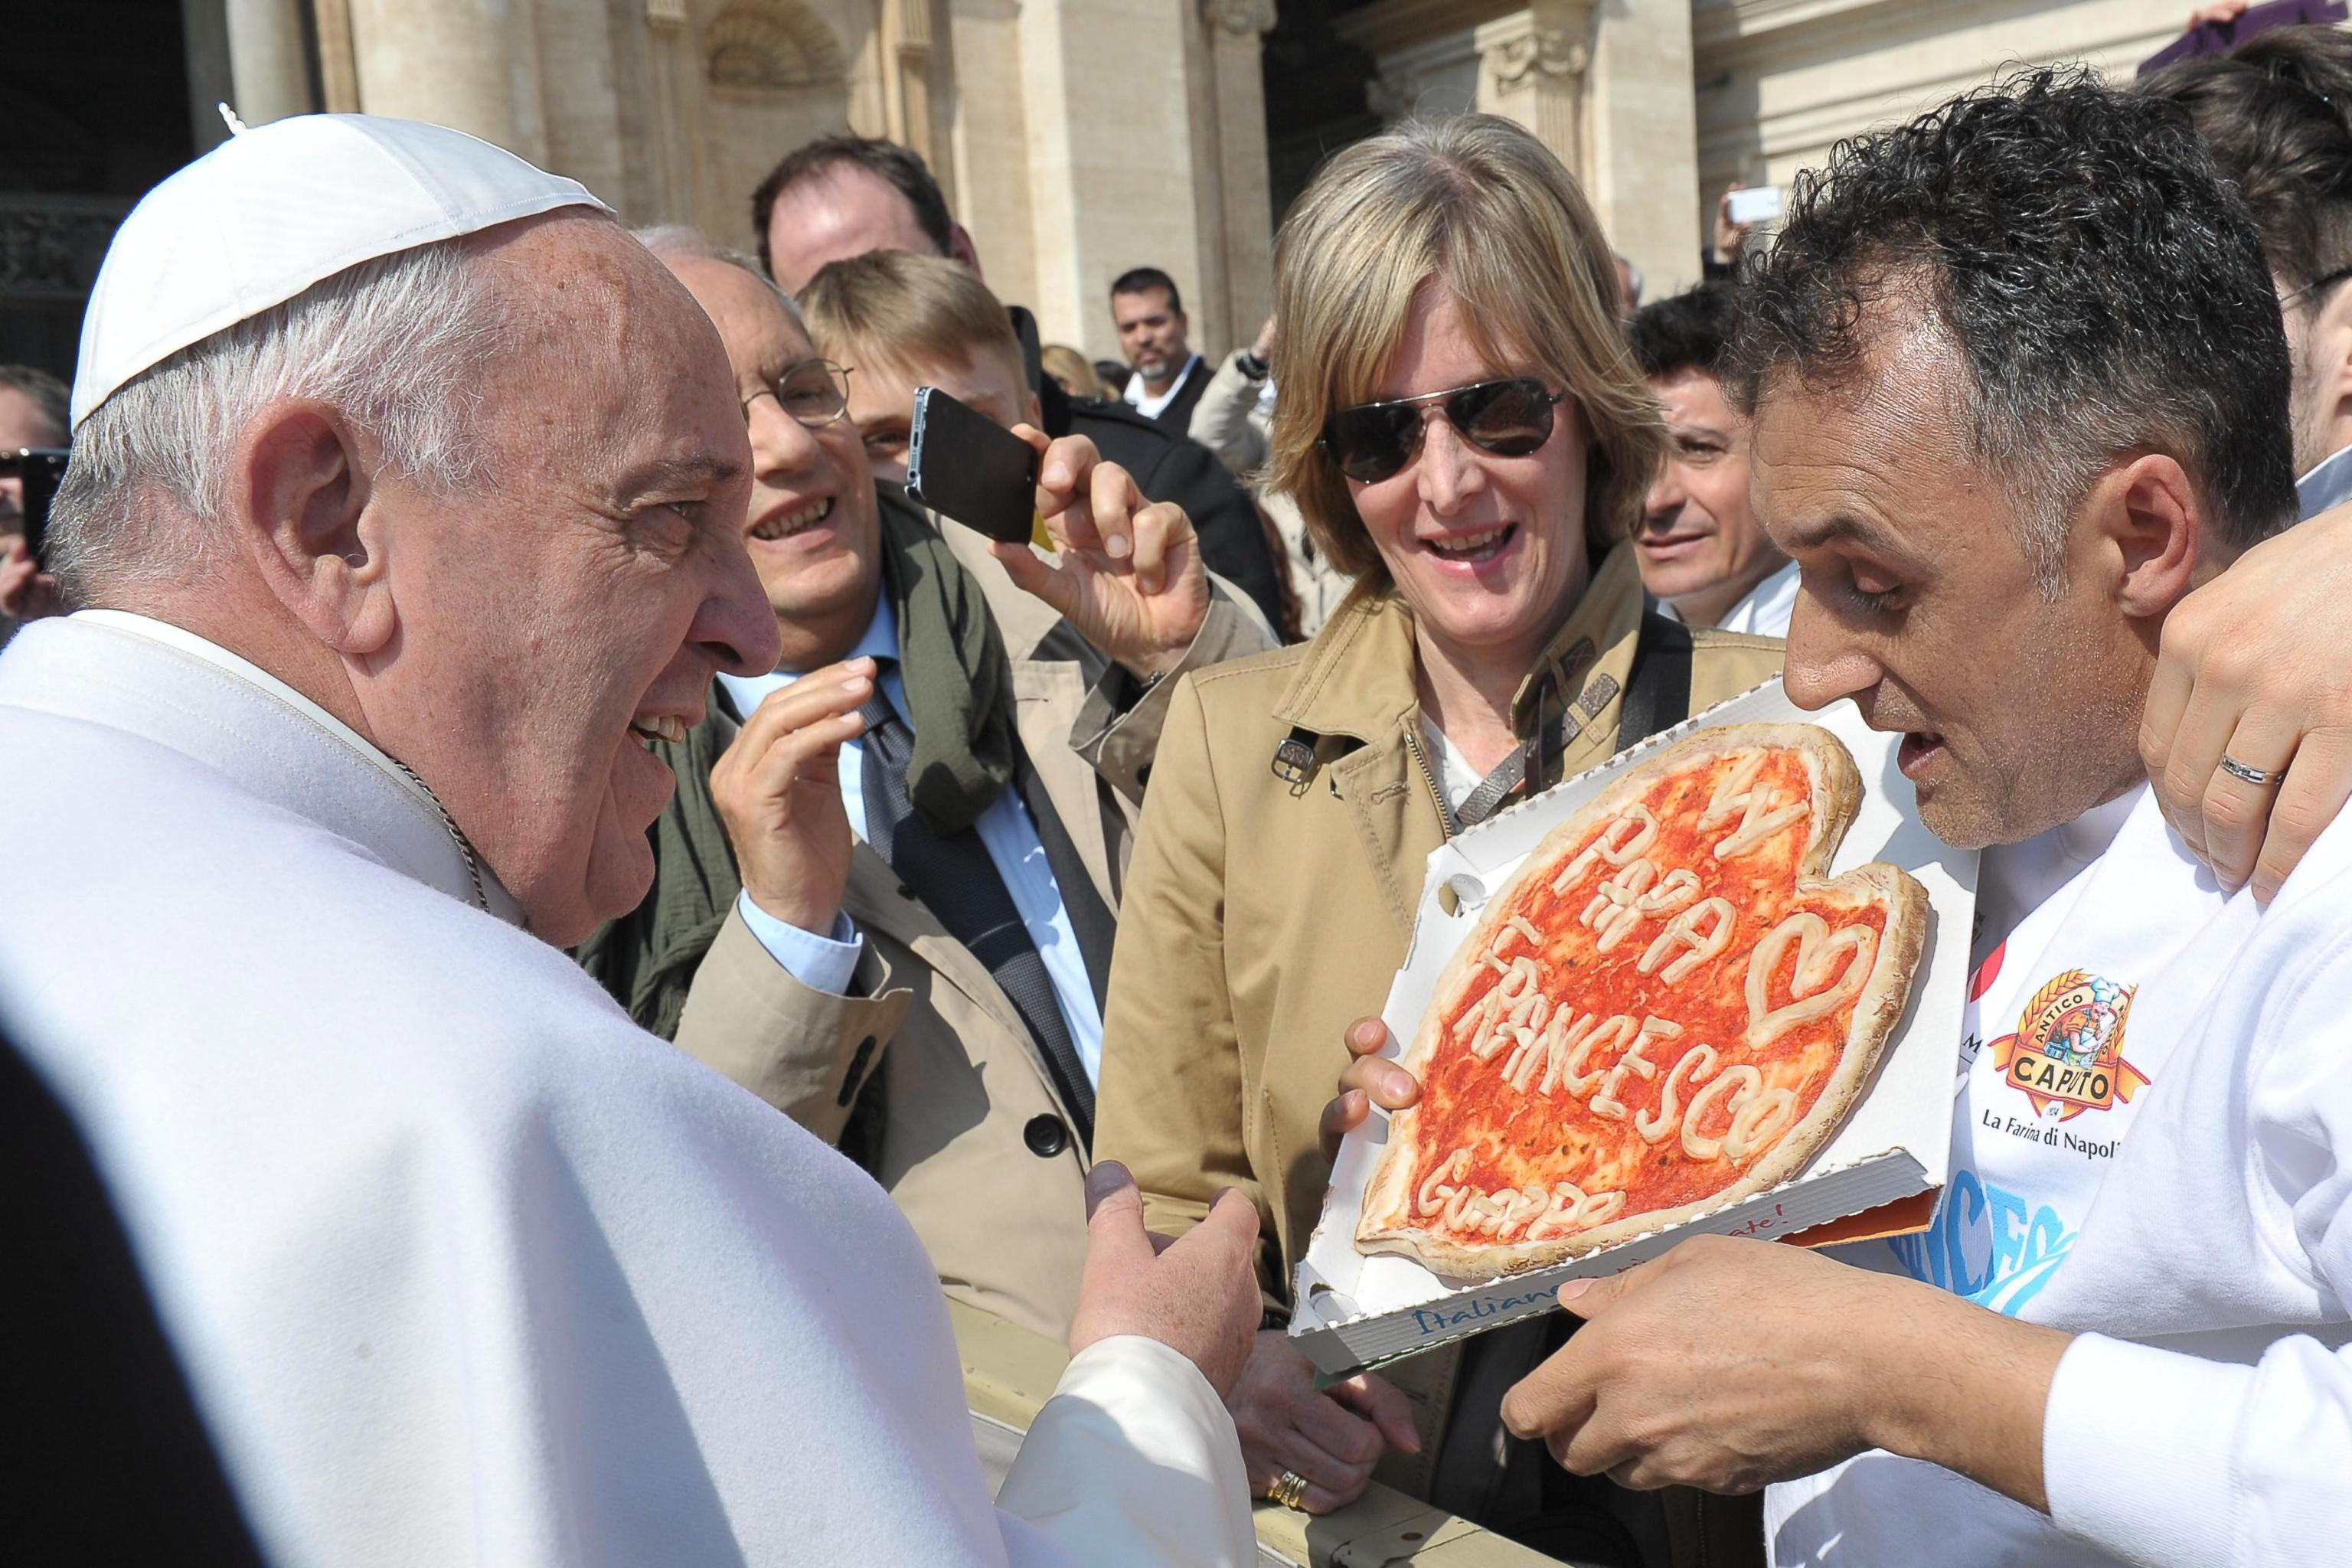 epa04657751 A handout photograph made available by the L'Osservatore Romano - Press Office showing Pope Francis receiving a gift of a special pizza during his weekly general audience in Saint Peter's Square, Vatican City, 11 March 2015.      +++ANSA PROVIDES ACCESS TO THIS HANDOUT PHOTO TO BE USED SOLELY TO ILLUSTRATE NEWS REPORTING OR COMMENTARY ON THE FACTS OR EVENTS DEPICTED IN THIS IMAGE; NO ARCHIVING; NO LICENSING+++  EPA/L'OSSERVATORE ROMANO / HANDOUT  HANDOUT EDITORIAL USE ONLY/NO SALES/NO ARCHIVES